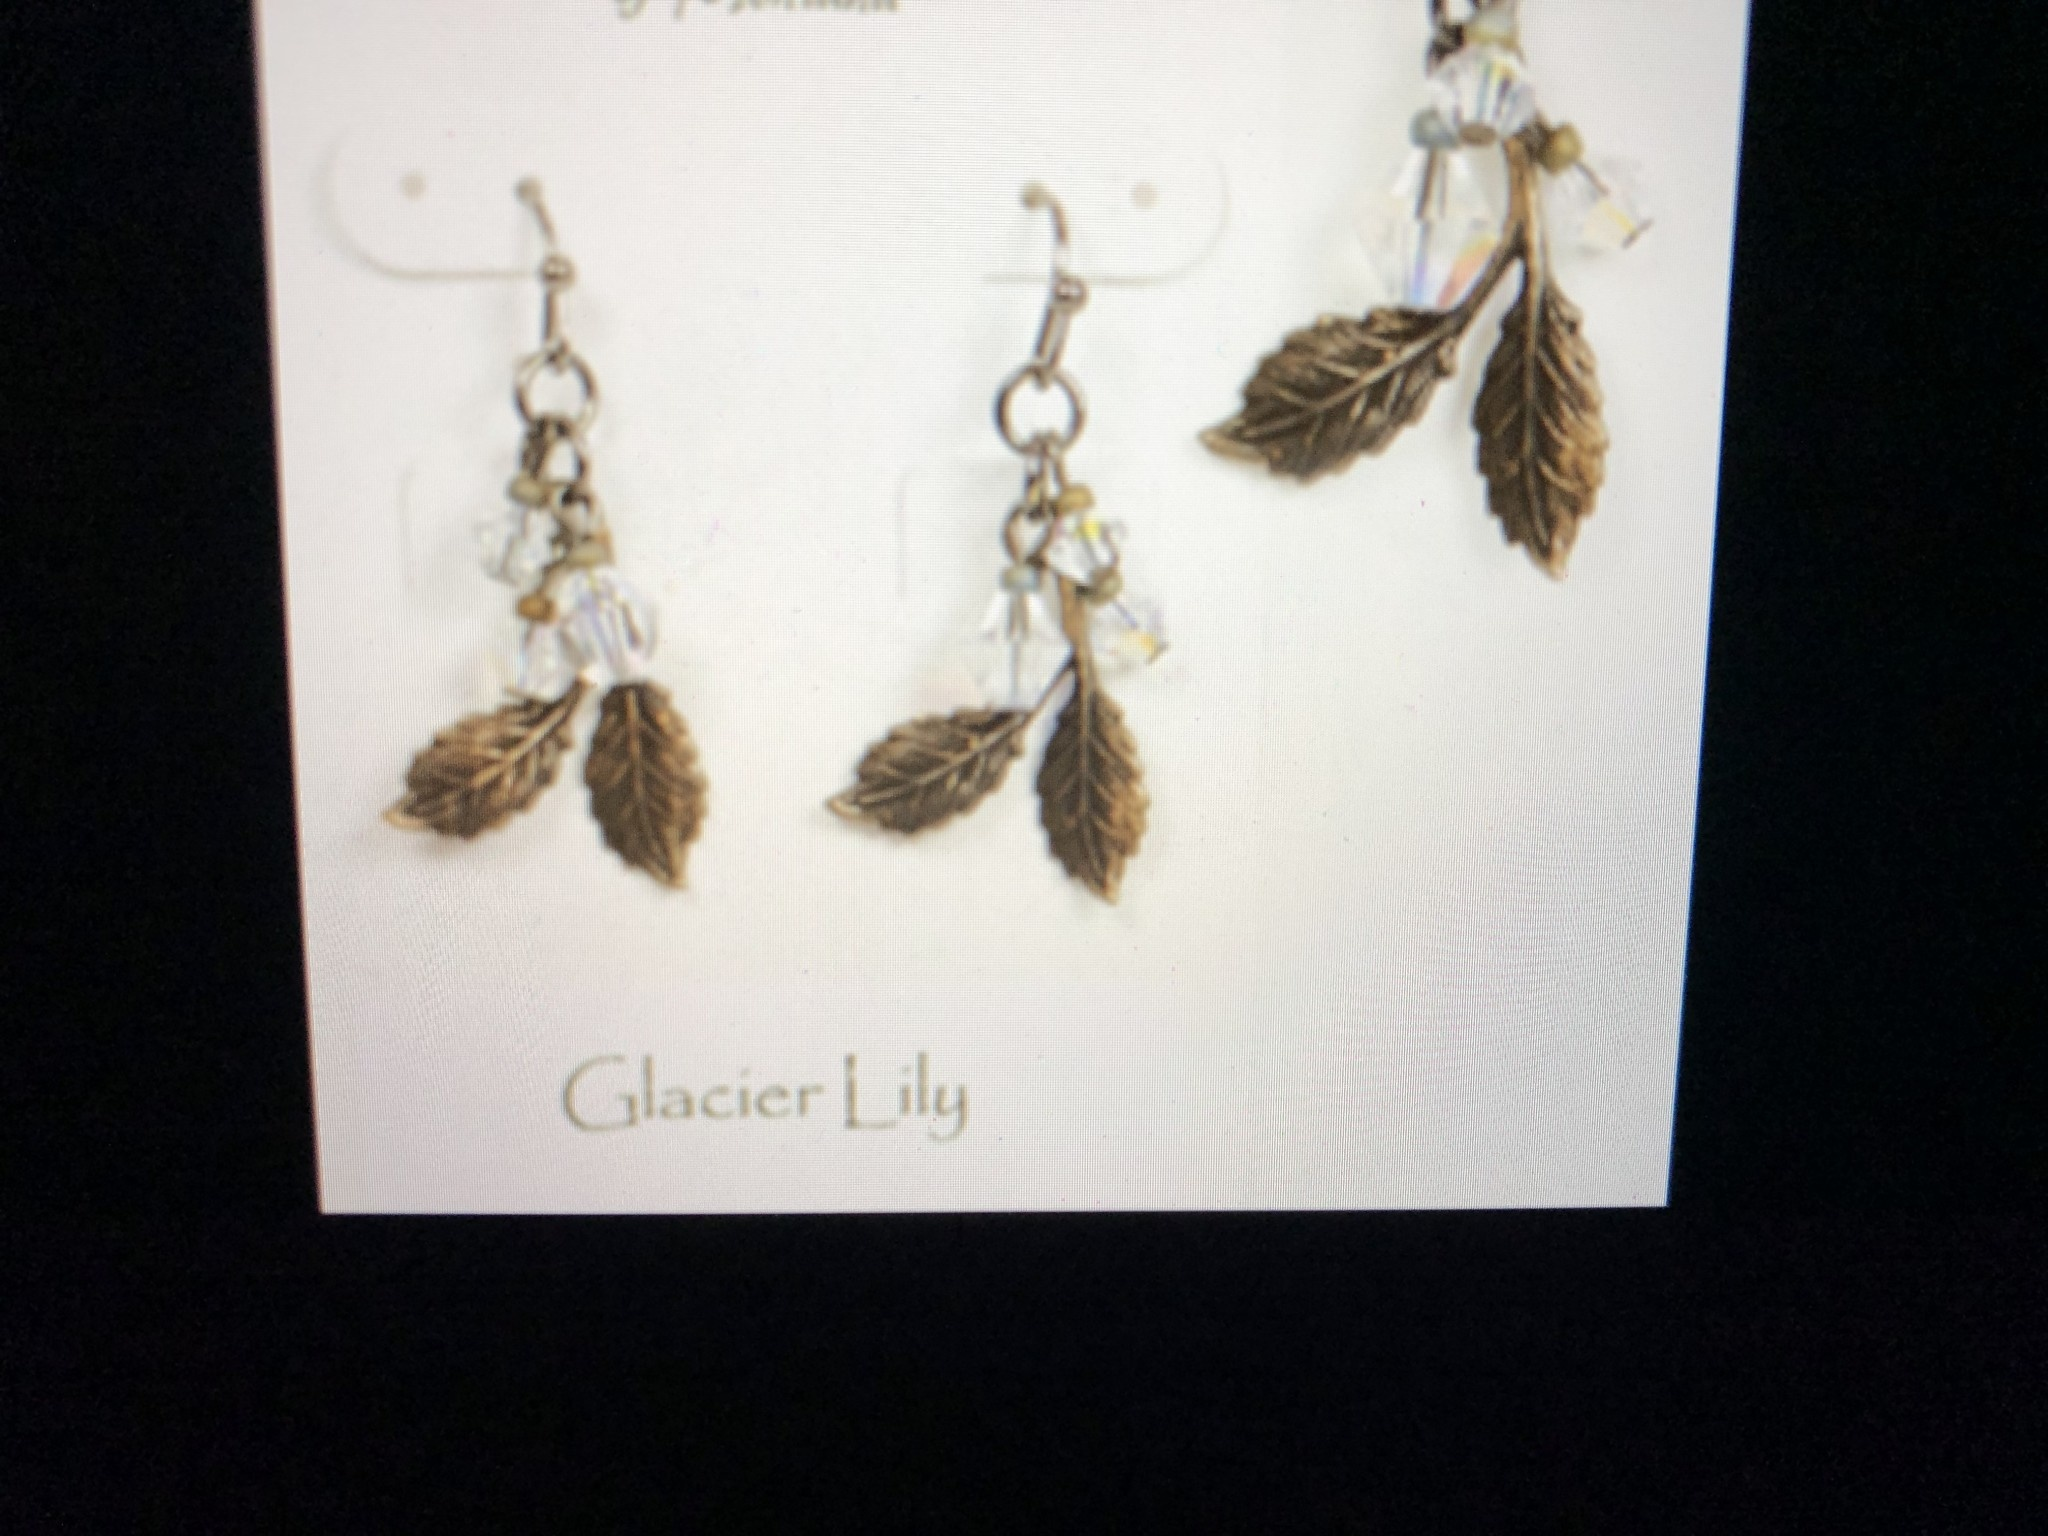 cool water jewelry EW257-60 Glacier Lily-Brass Leaves & Crystals